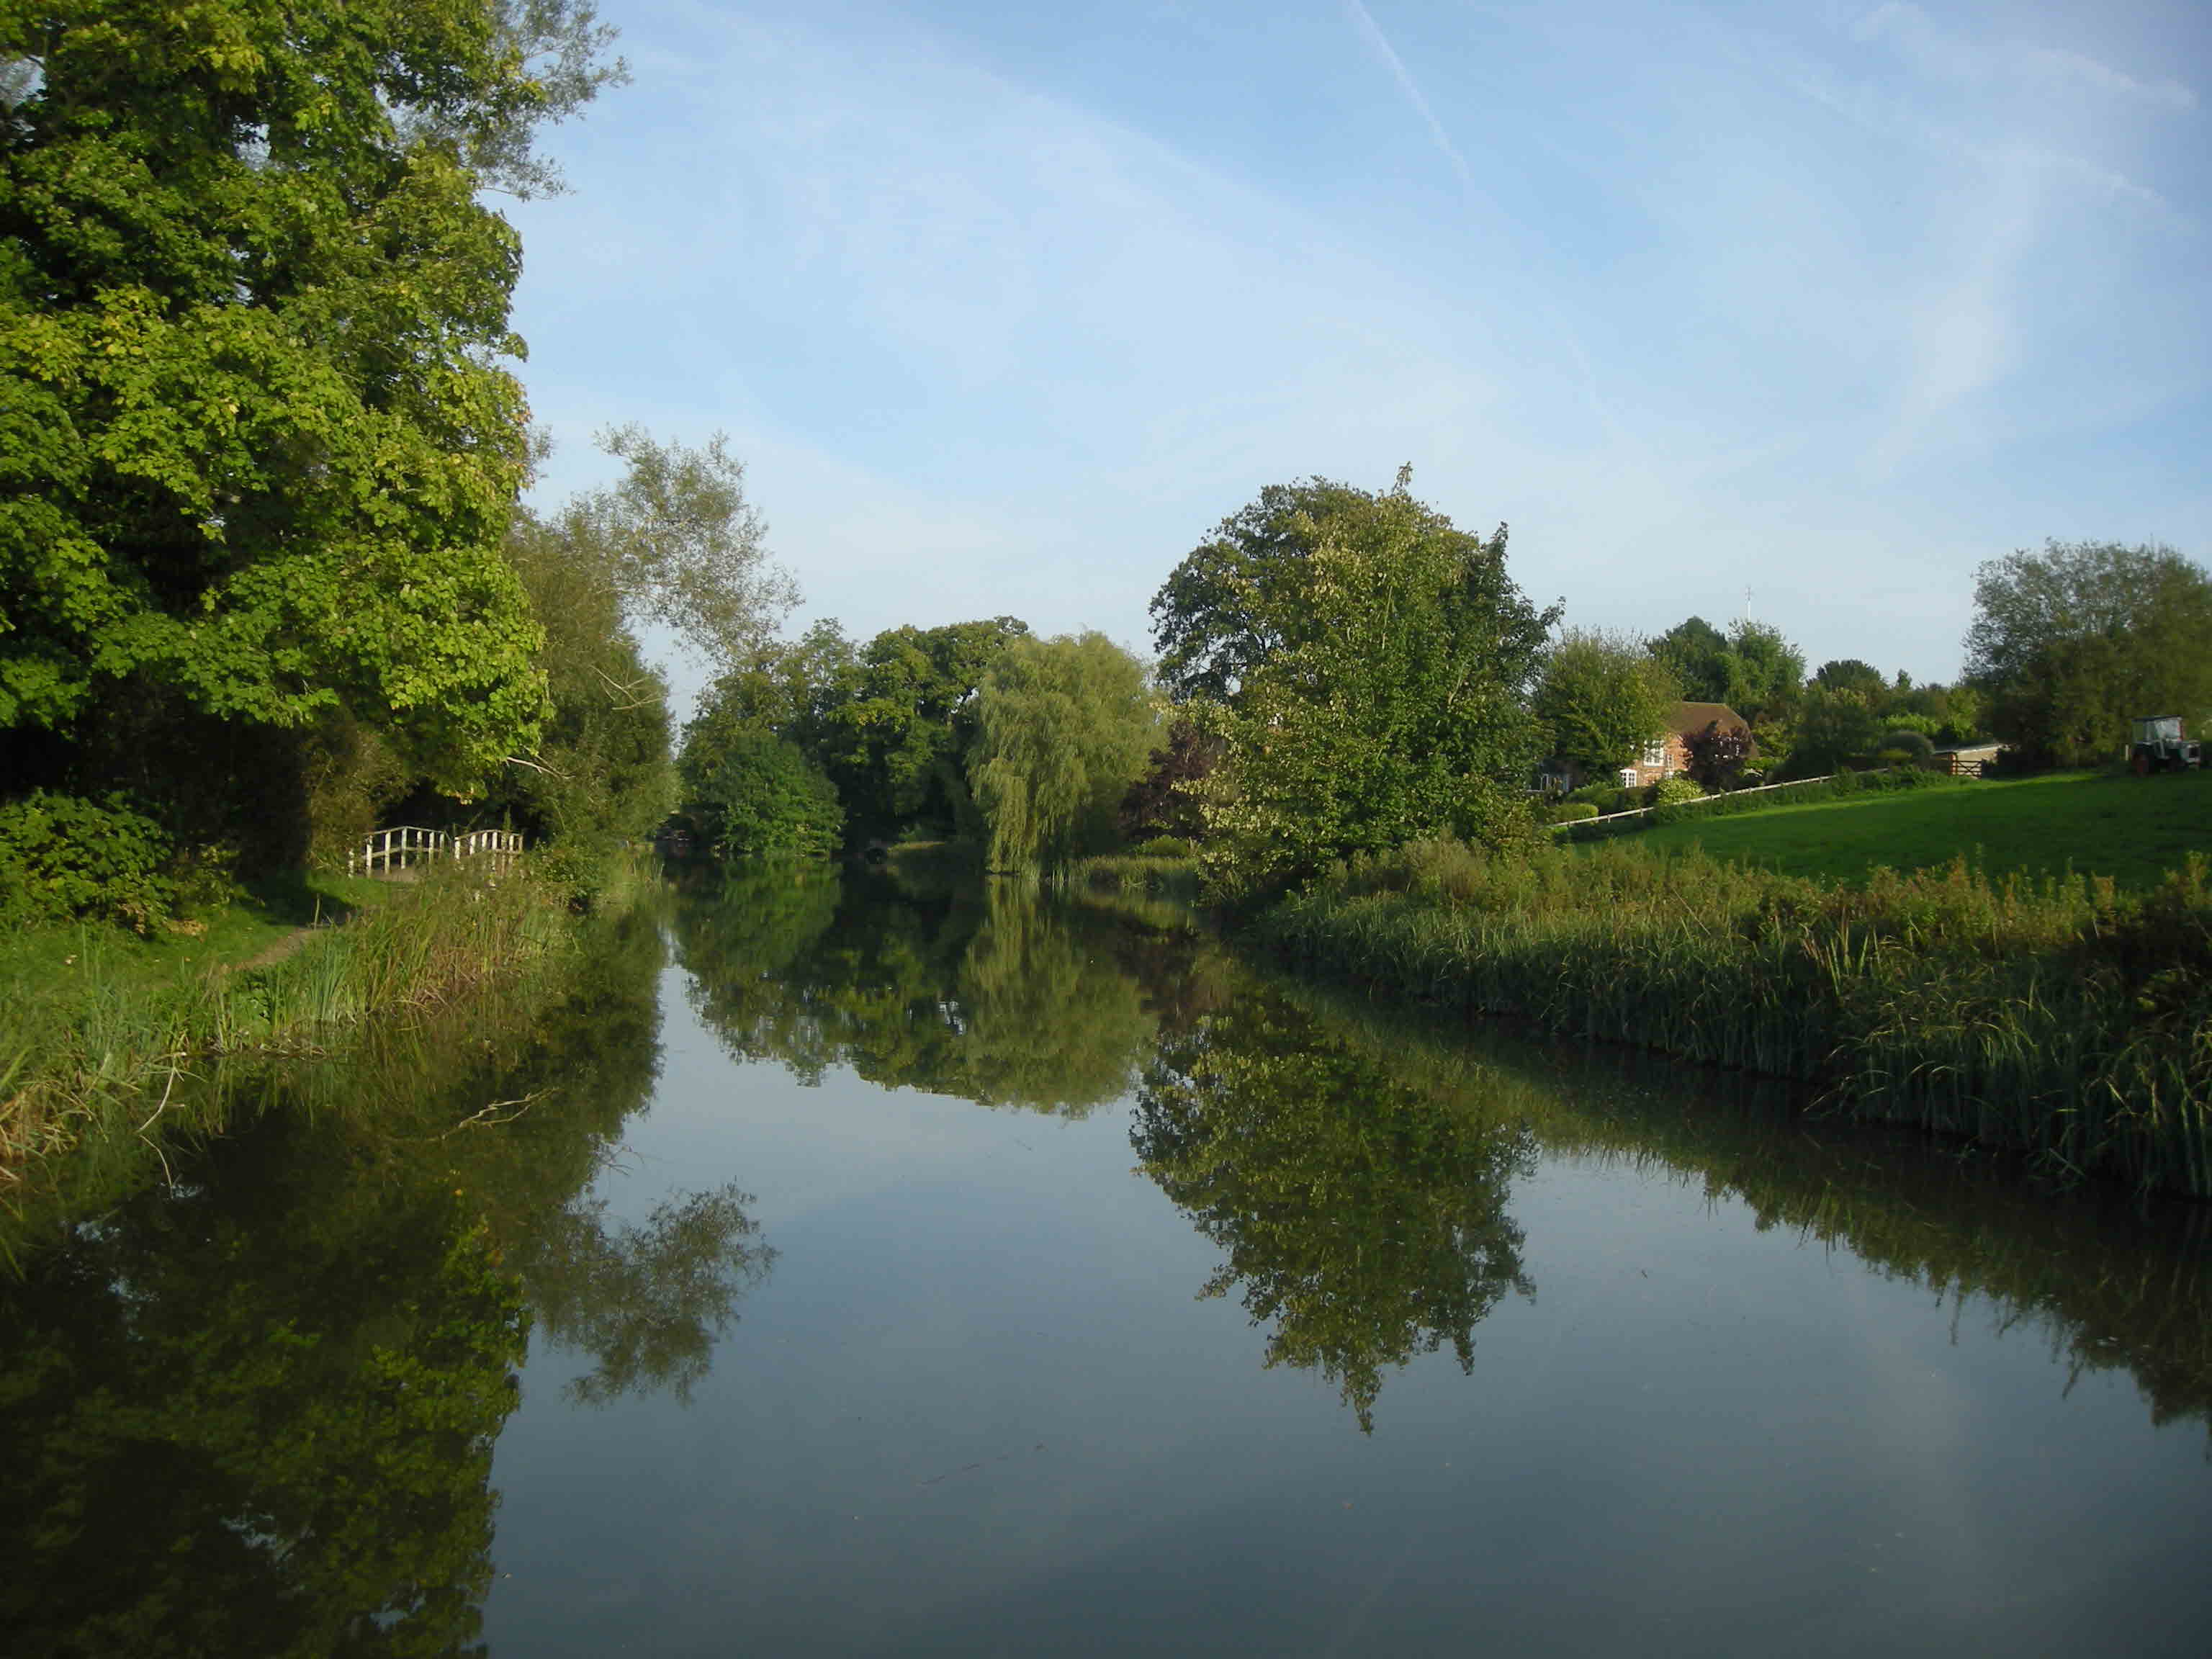 The approach to Kintbury